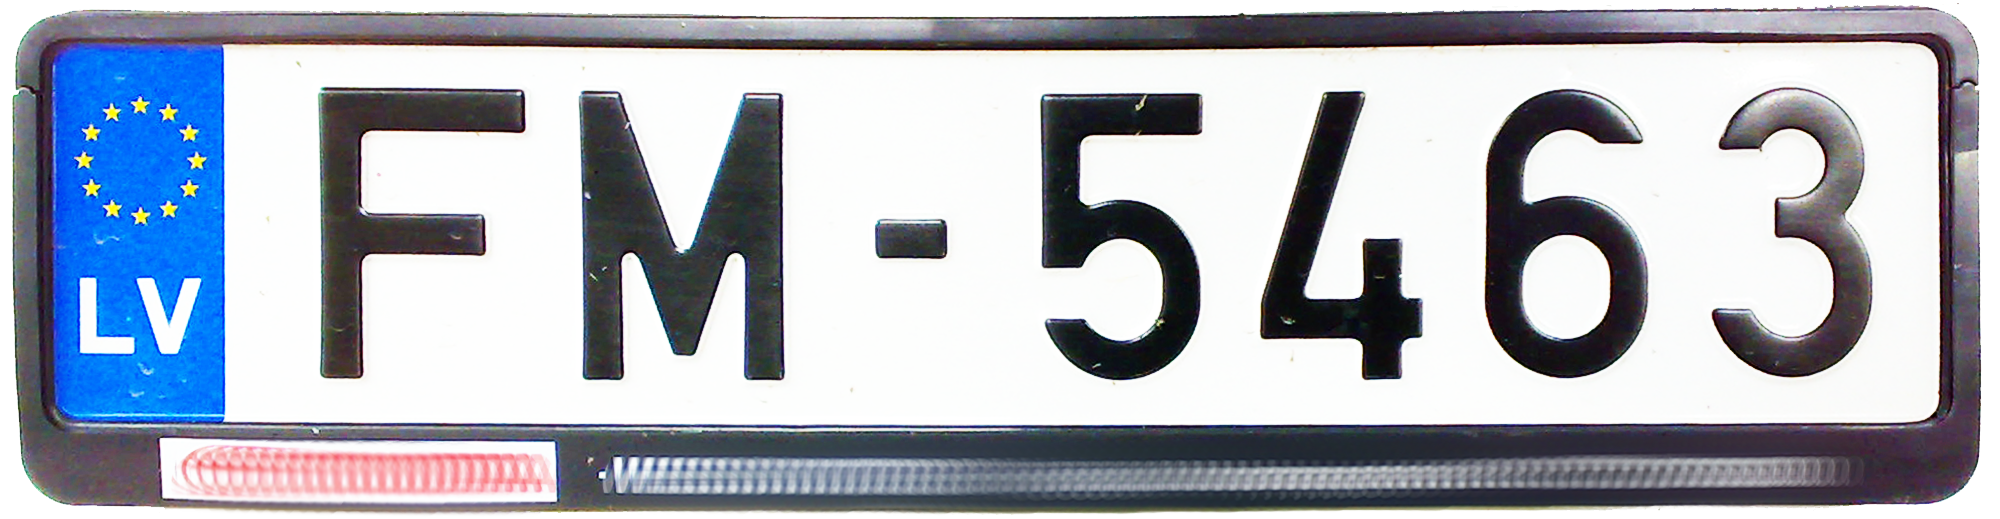 Car Number Plates Uk History